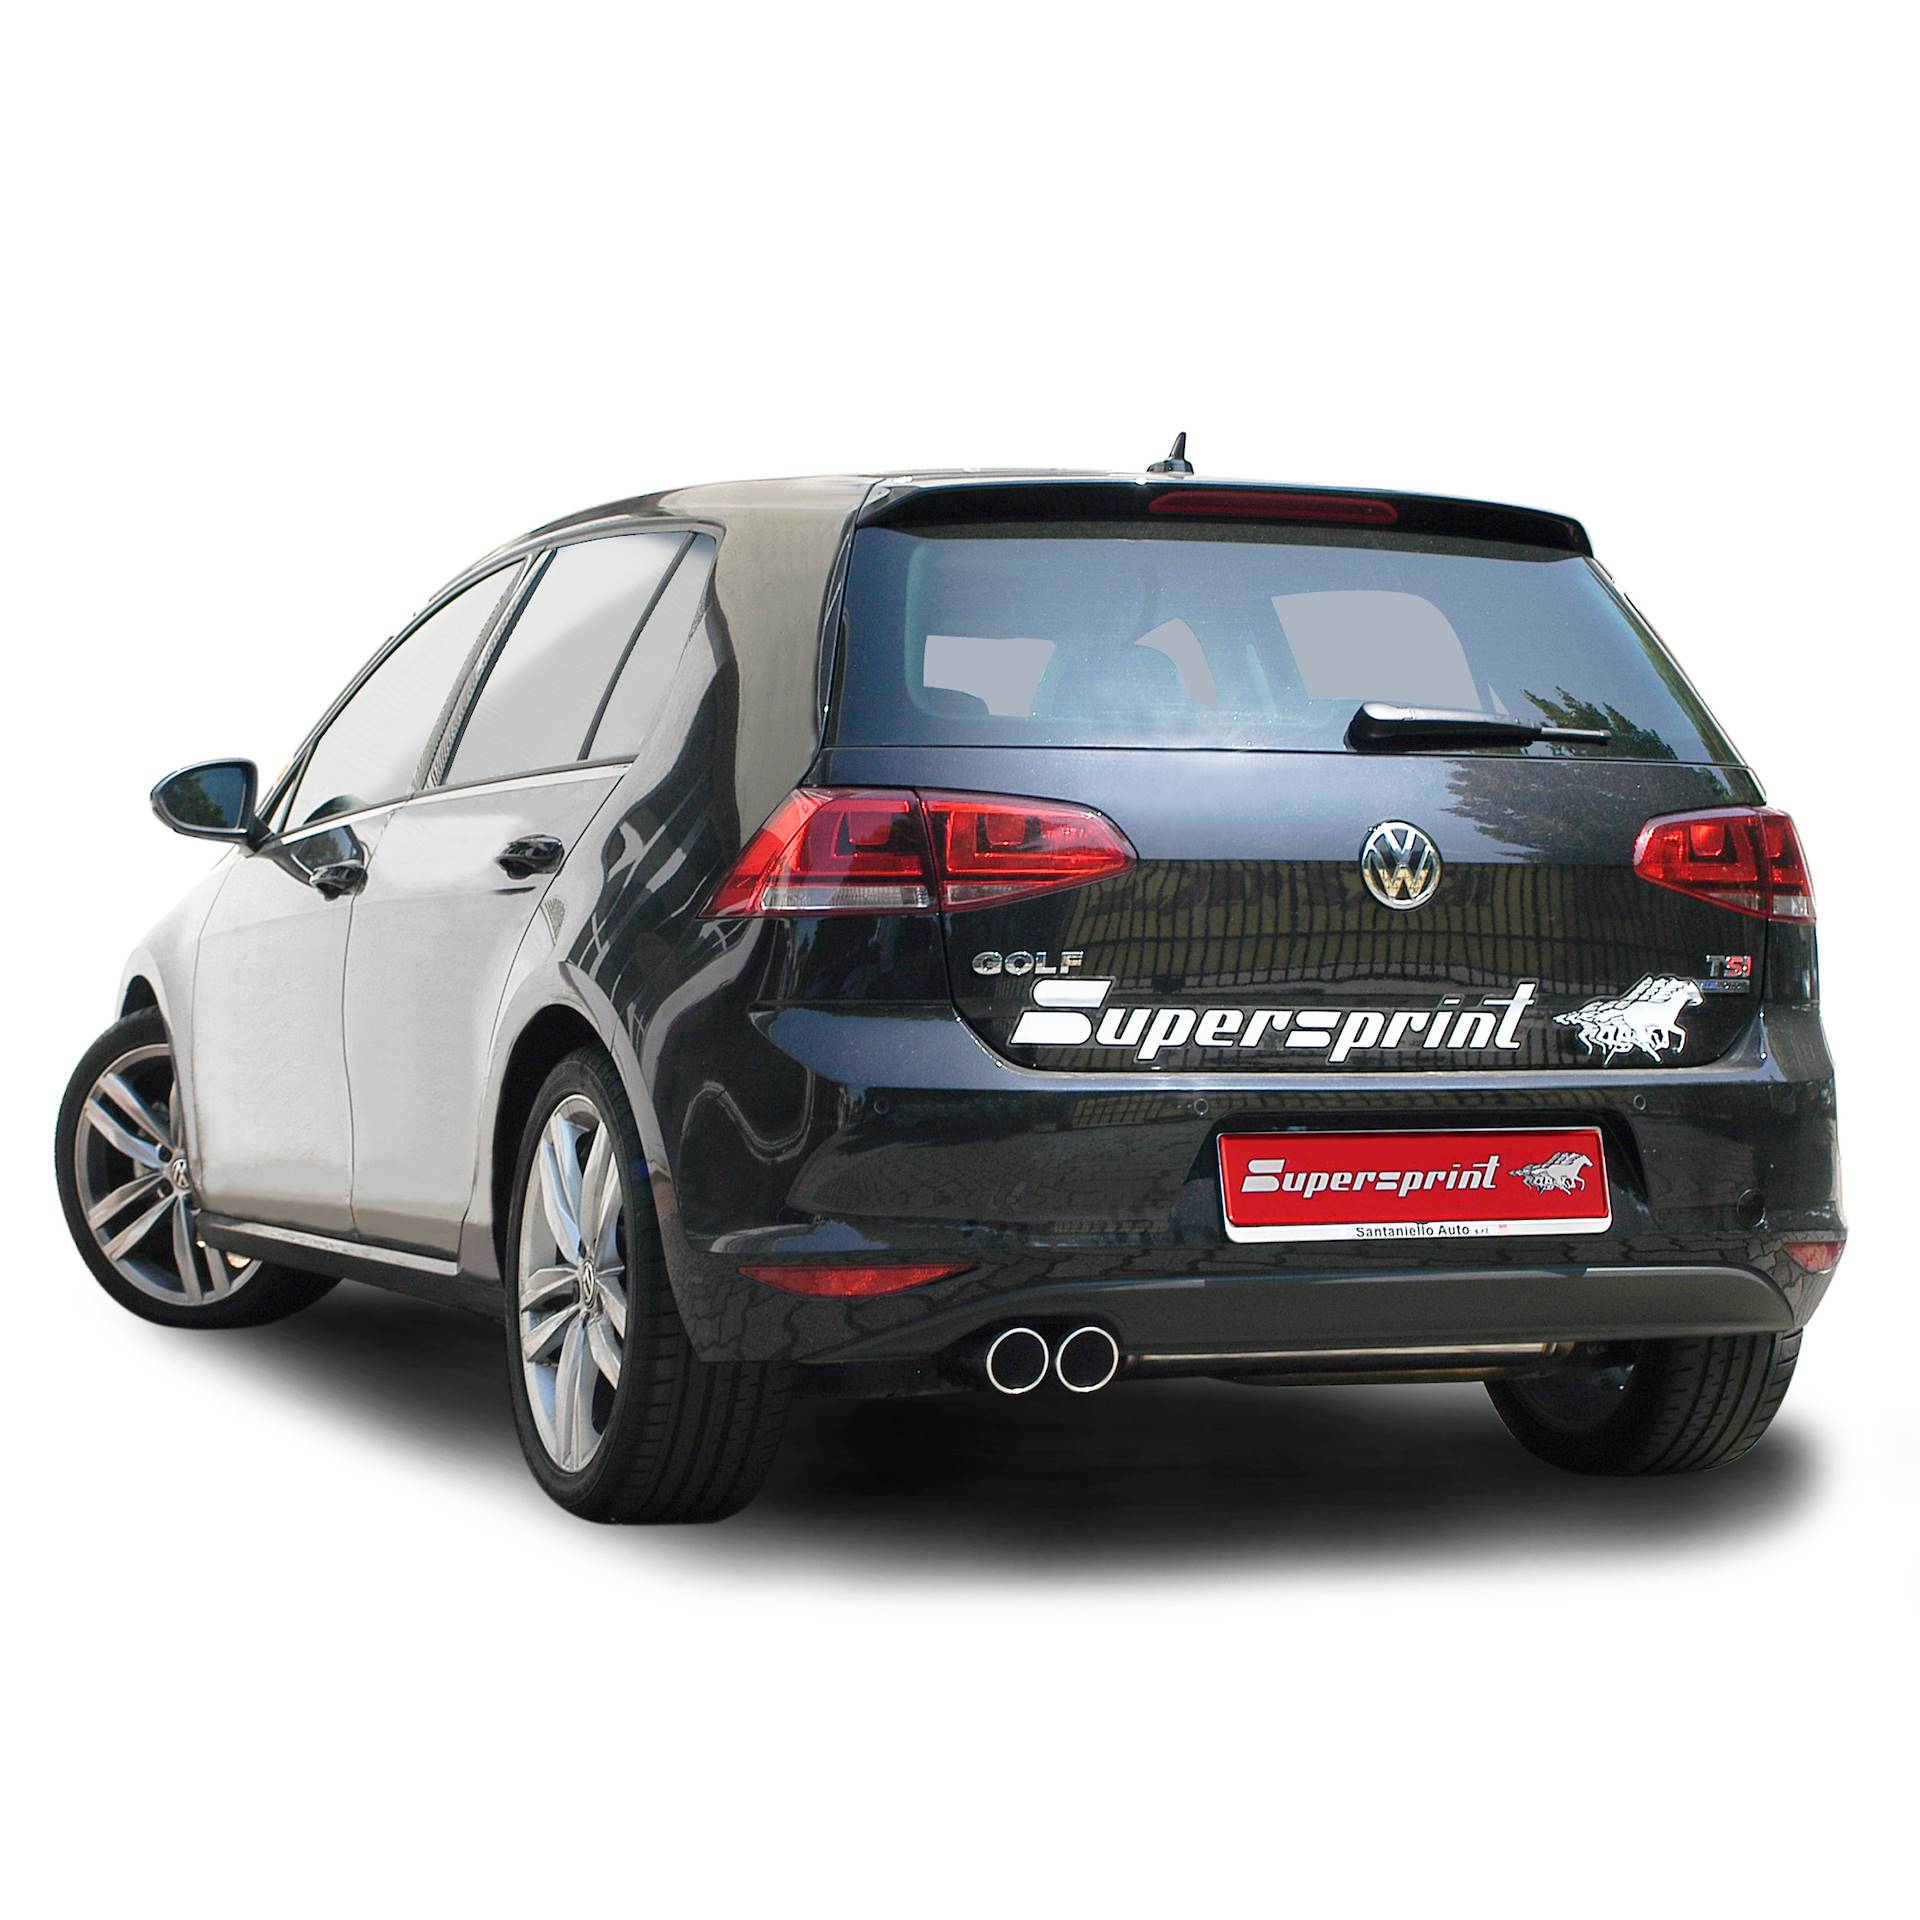 vw golf vii gt act 1 4 tsi 140 hp 2012 volkswagen exhaust systems. Black Bedroom Furniture Sets. Home Design Ideas